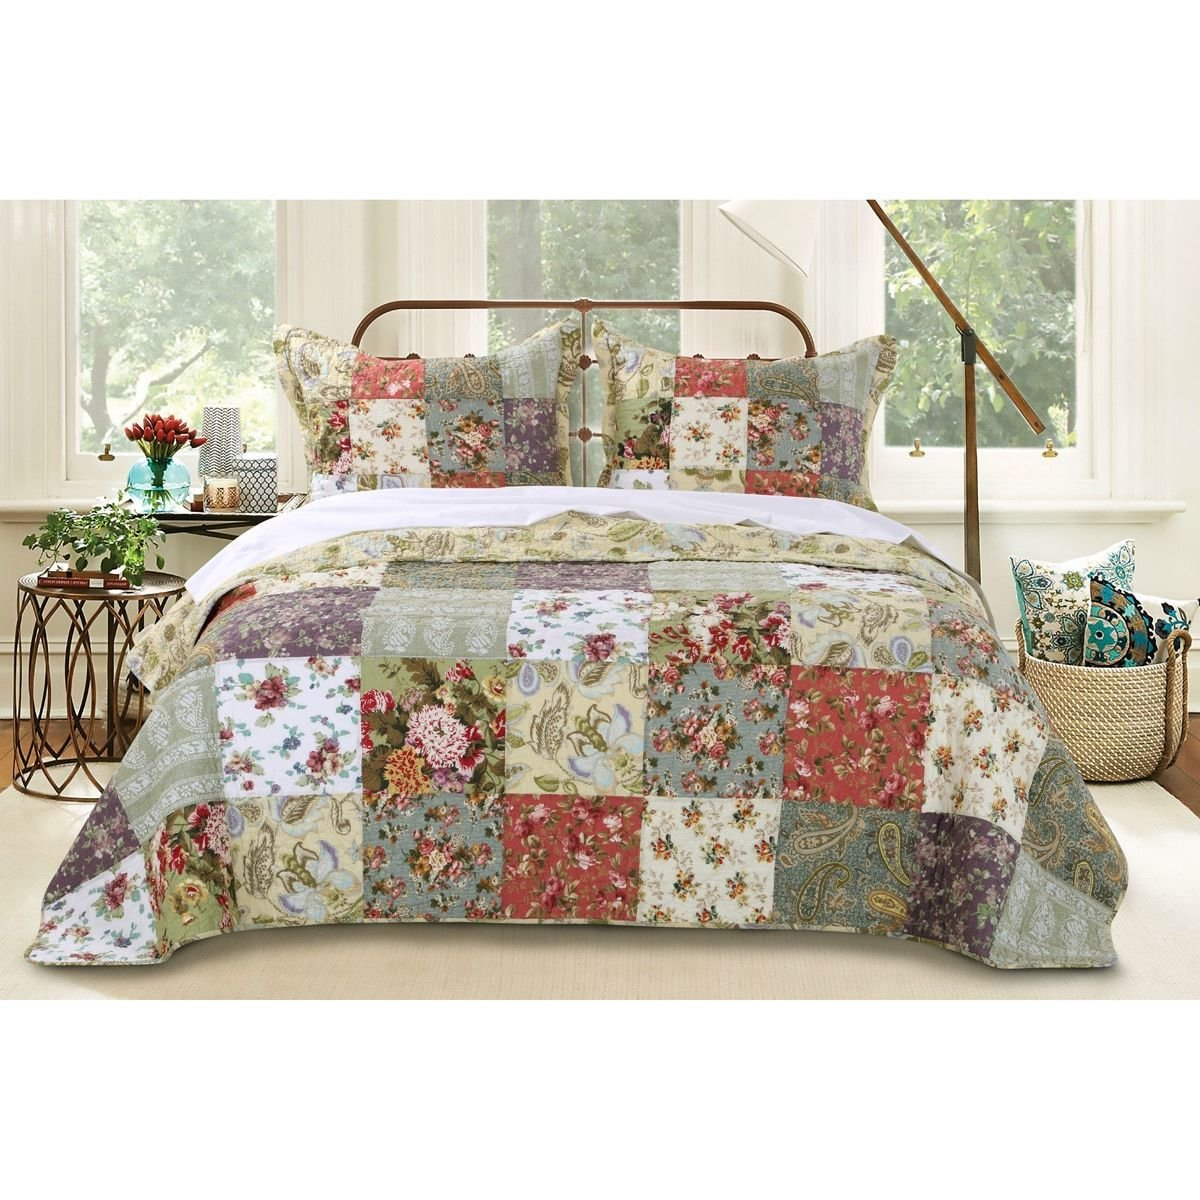 3 Piece Oversized Green Purple Patchwork Bedspread King Set, Quilted French Country Damask Floral Rustic Flowers Pattern Prairie Themed Farmhouse Charm Cottage Oversize To The Floor Checked, Cotton